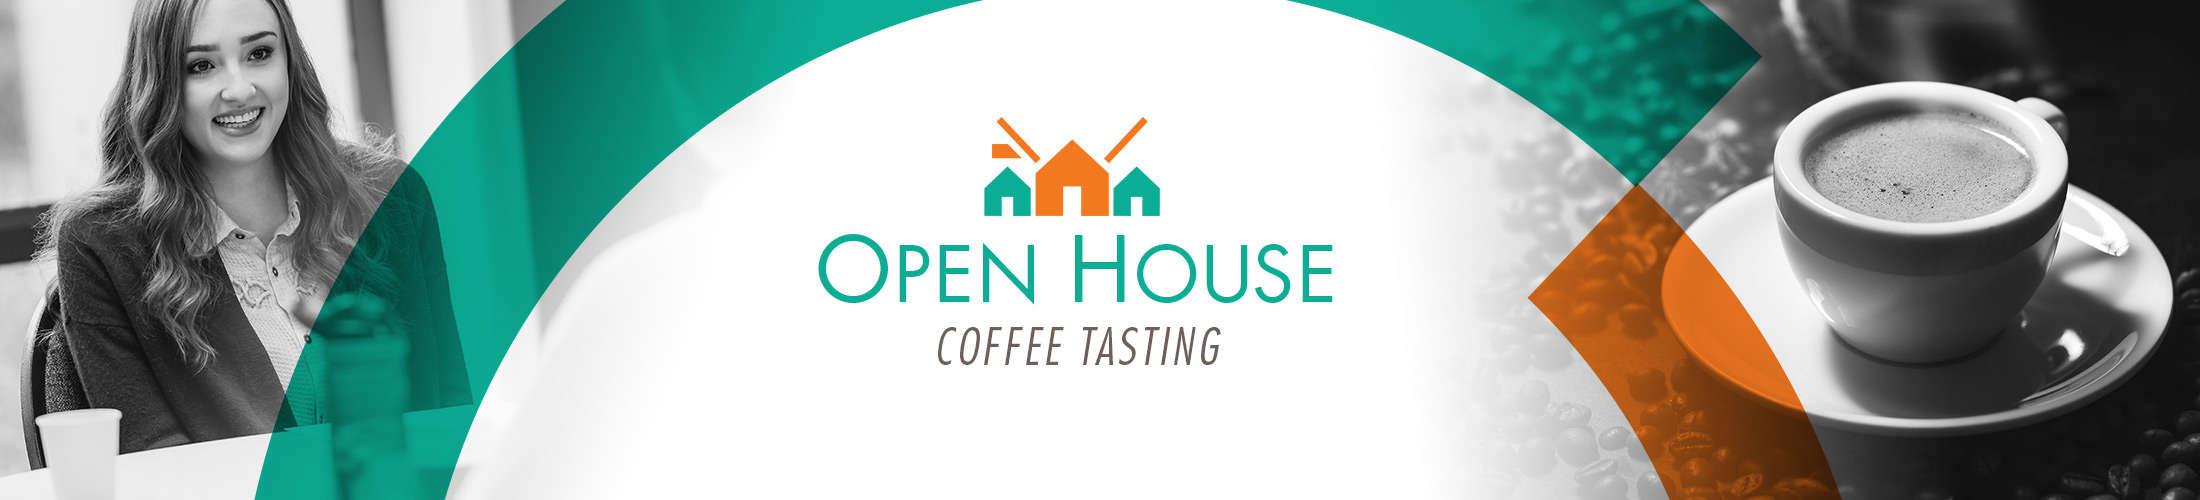 Admissions Open House Coffee Tasting 2018